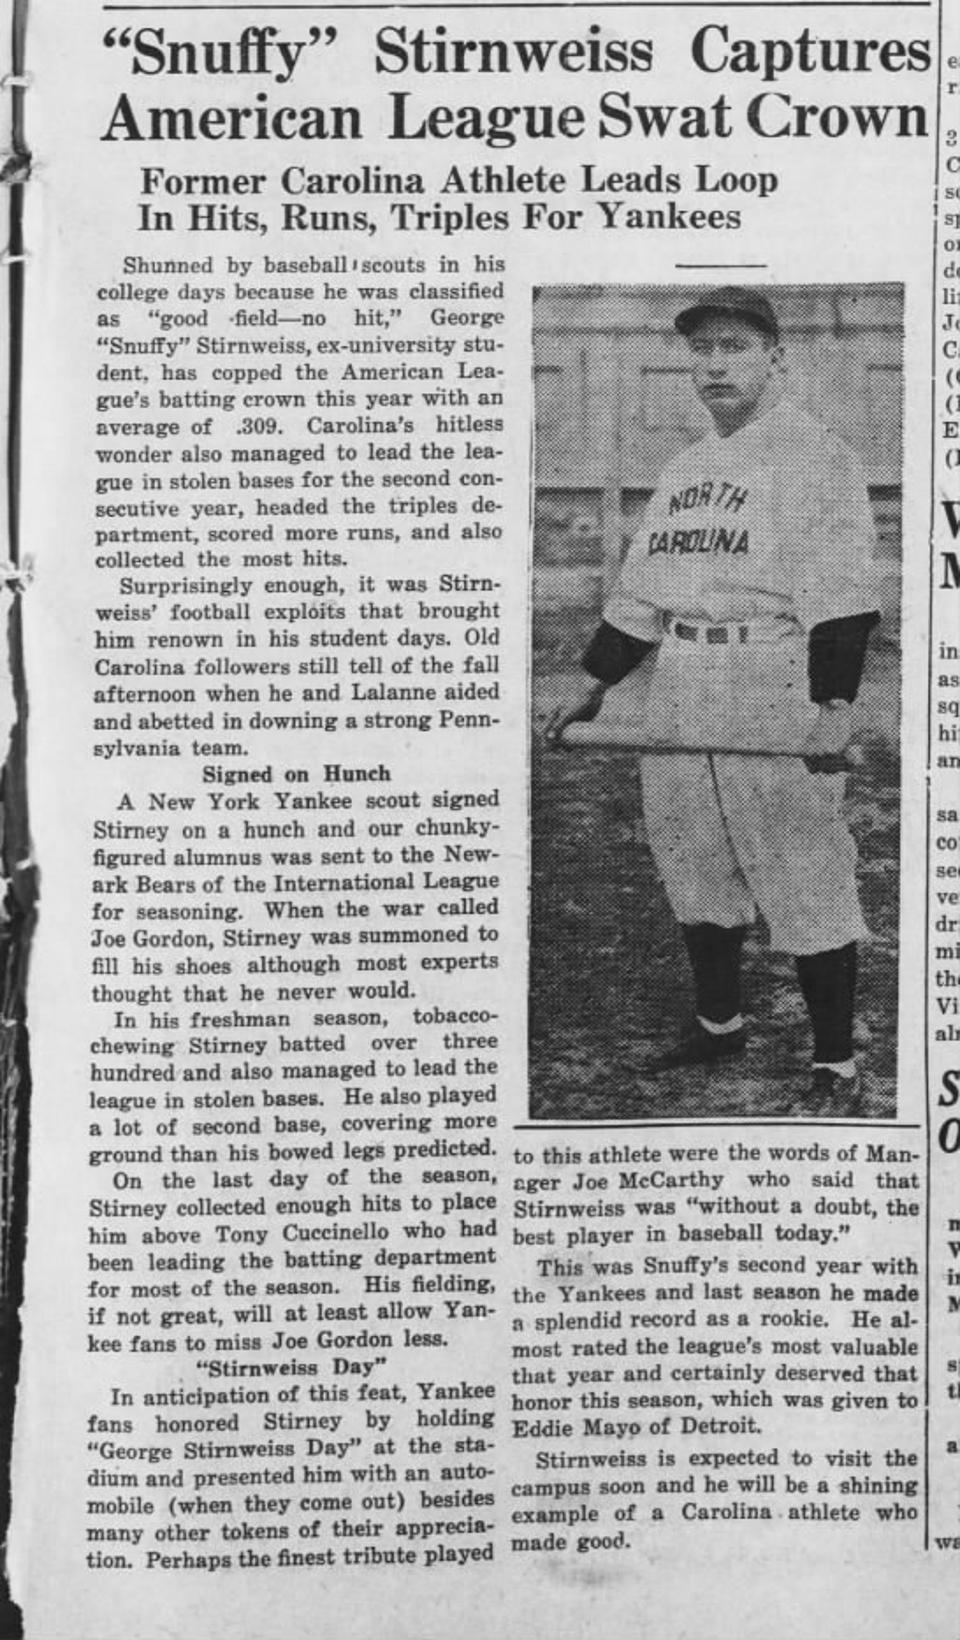 Clipping from The Daily Tar Heel from October 6, 1945